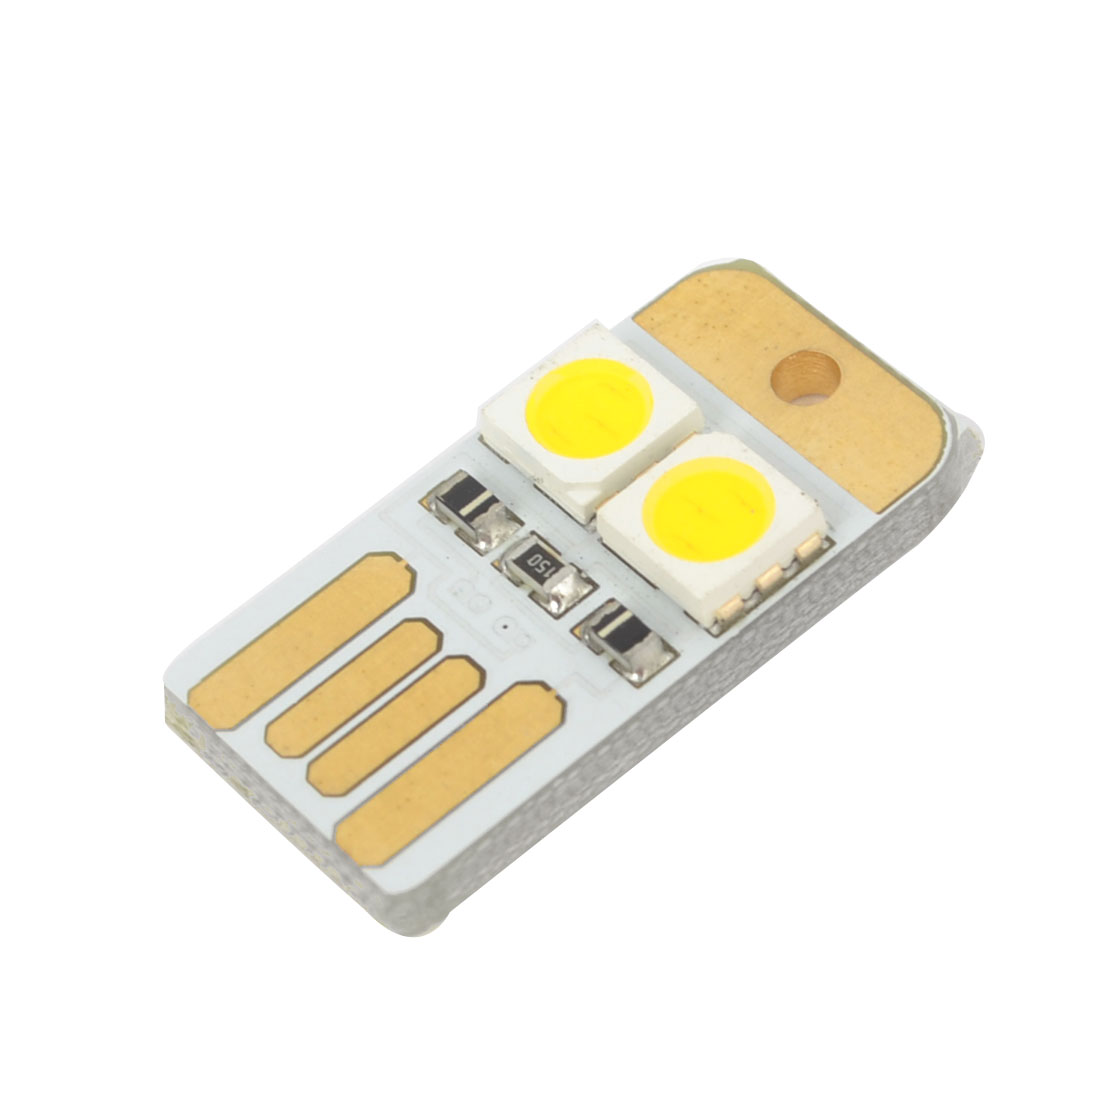 USB Port LED White 2 LEDs 5050 SMD Night Light Board Lamp for Laptop Computer